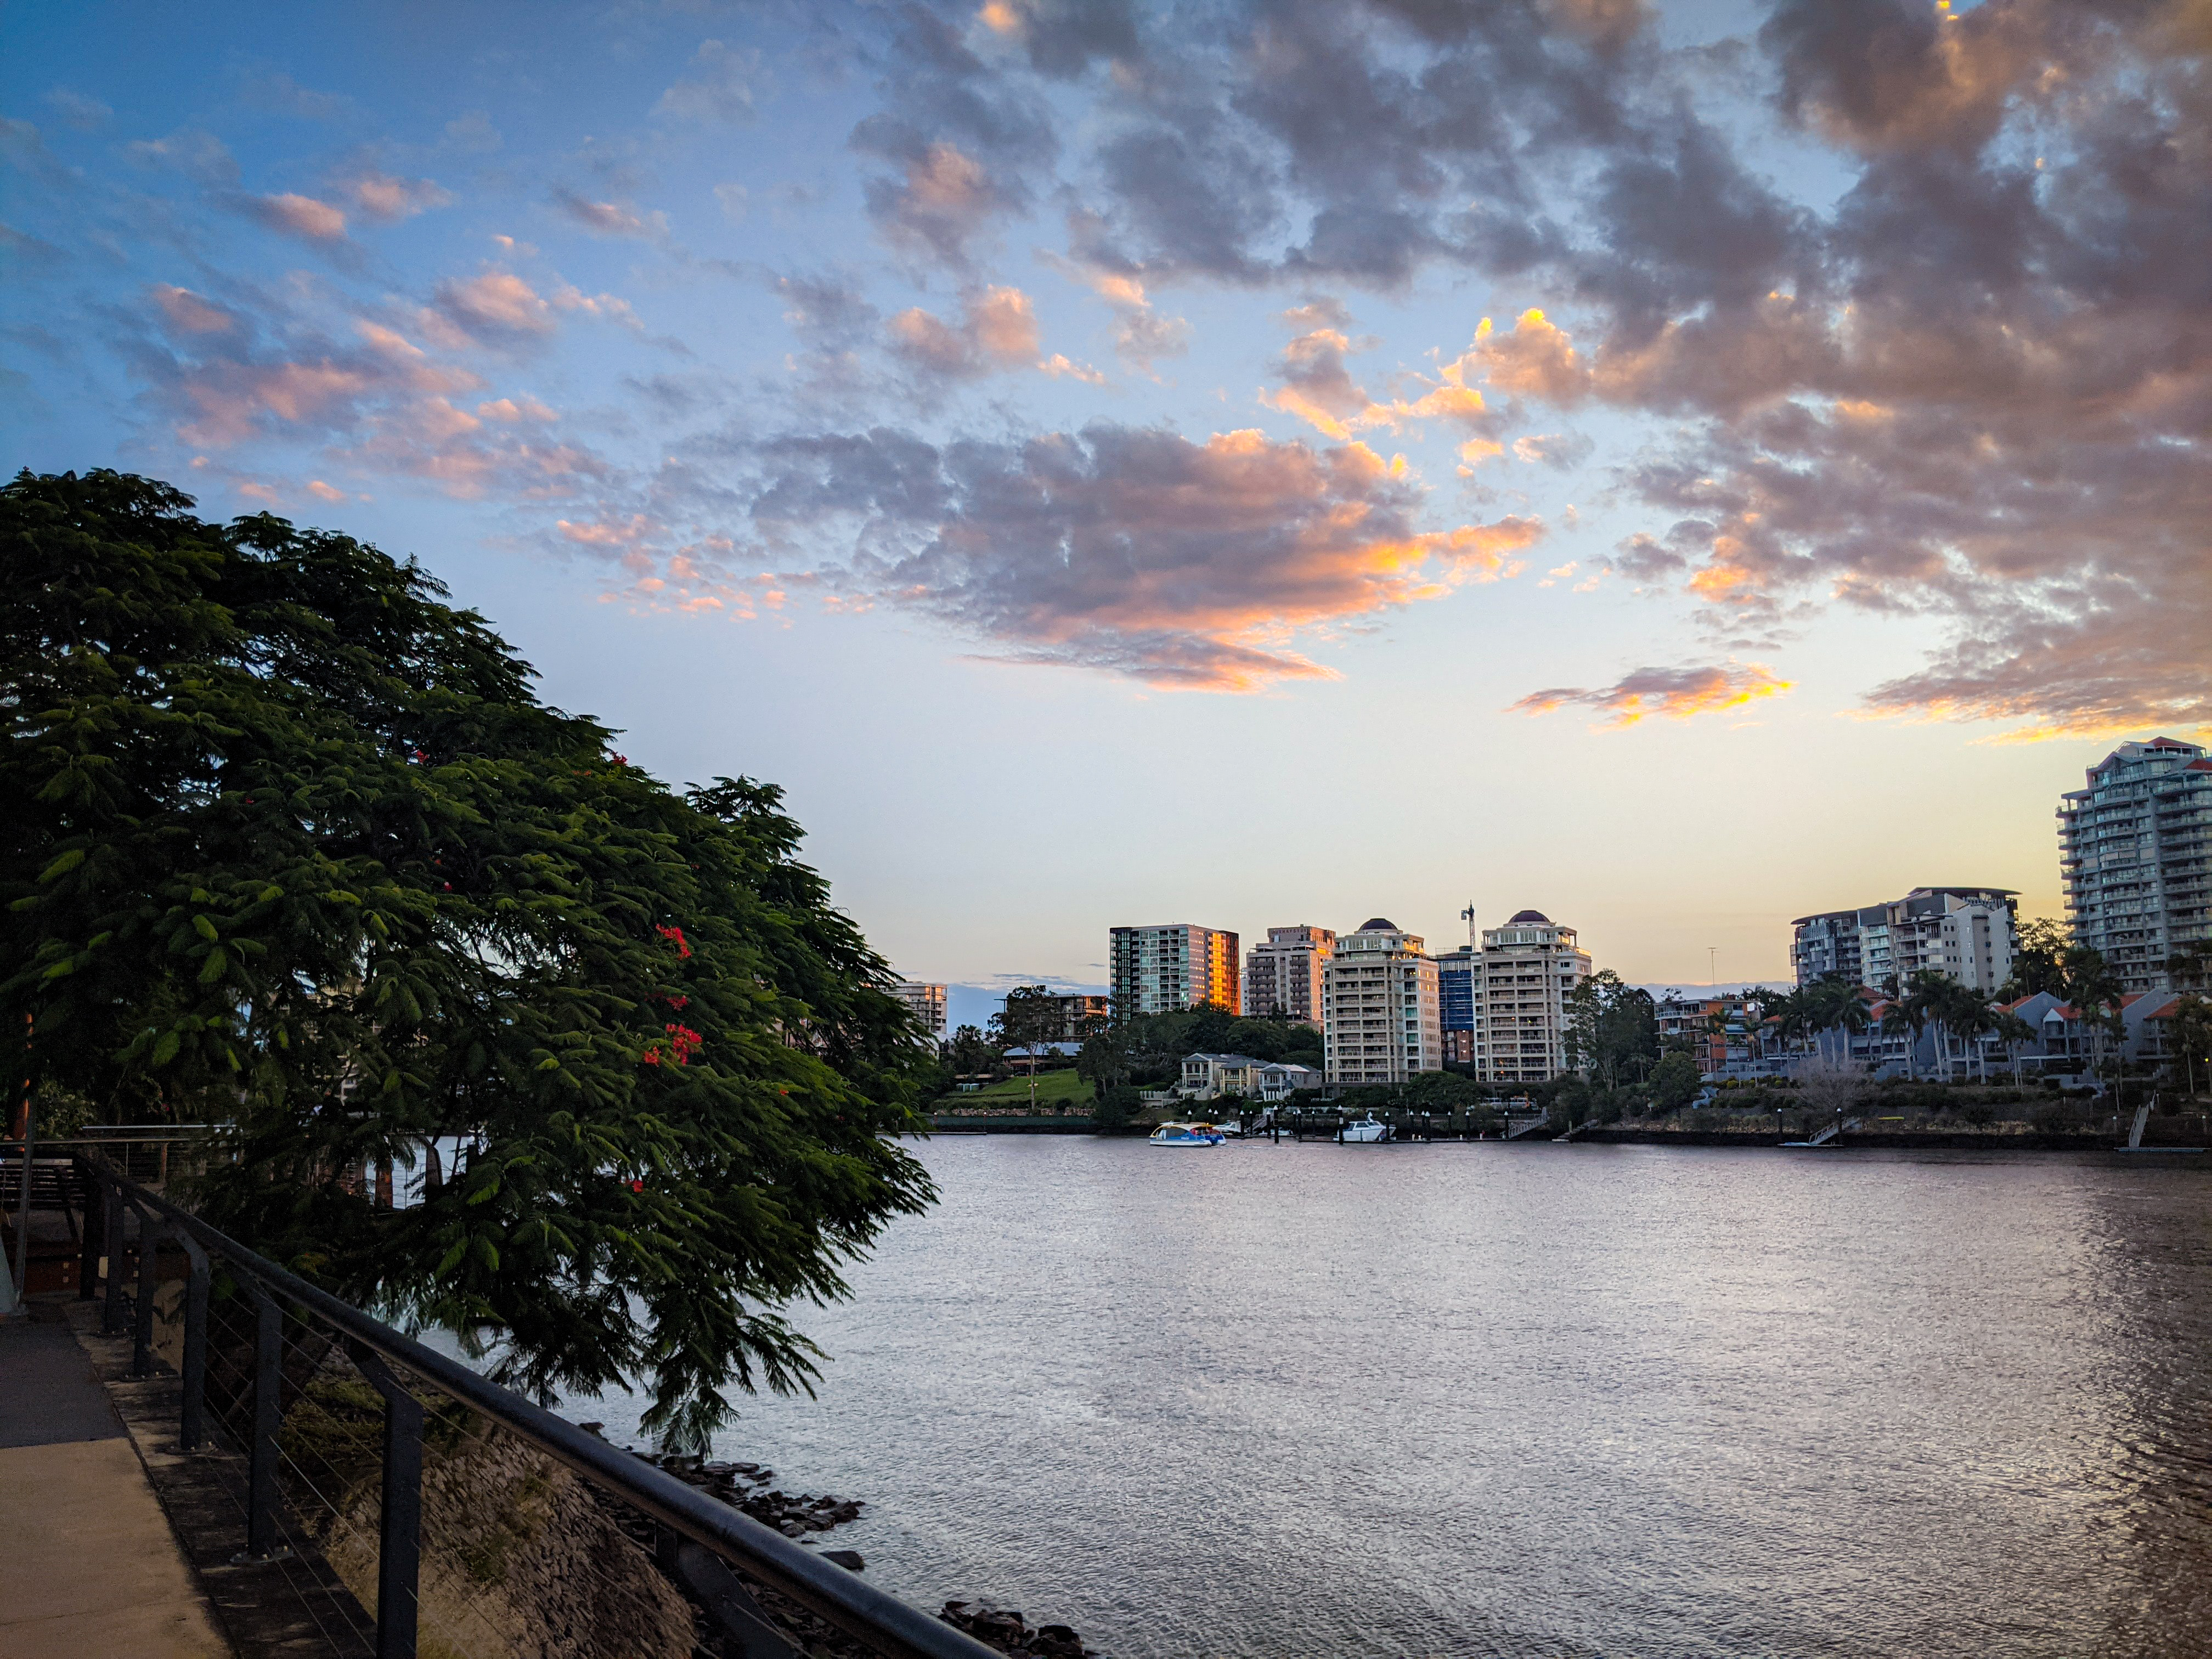 The Brisbane River with small cat ferries